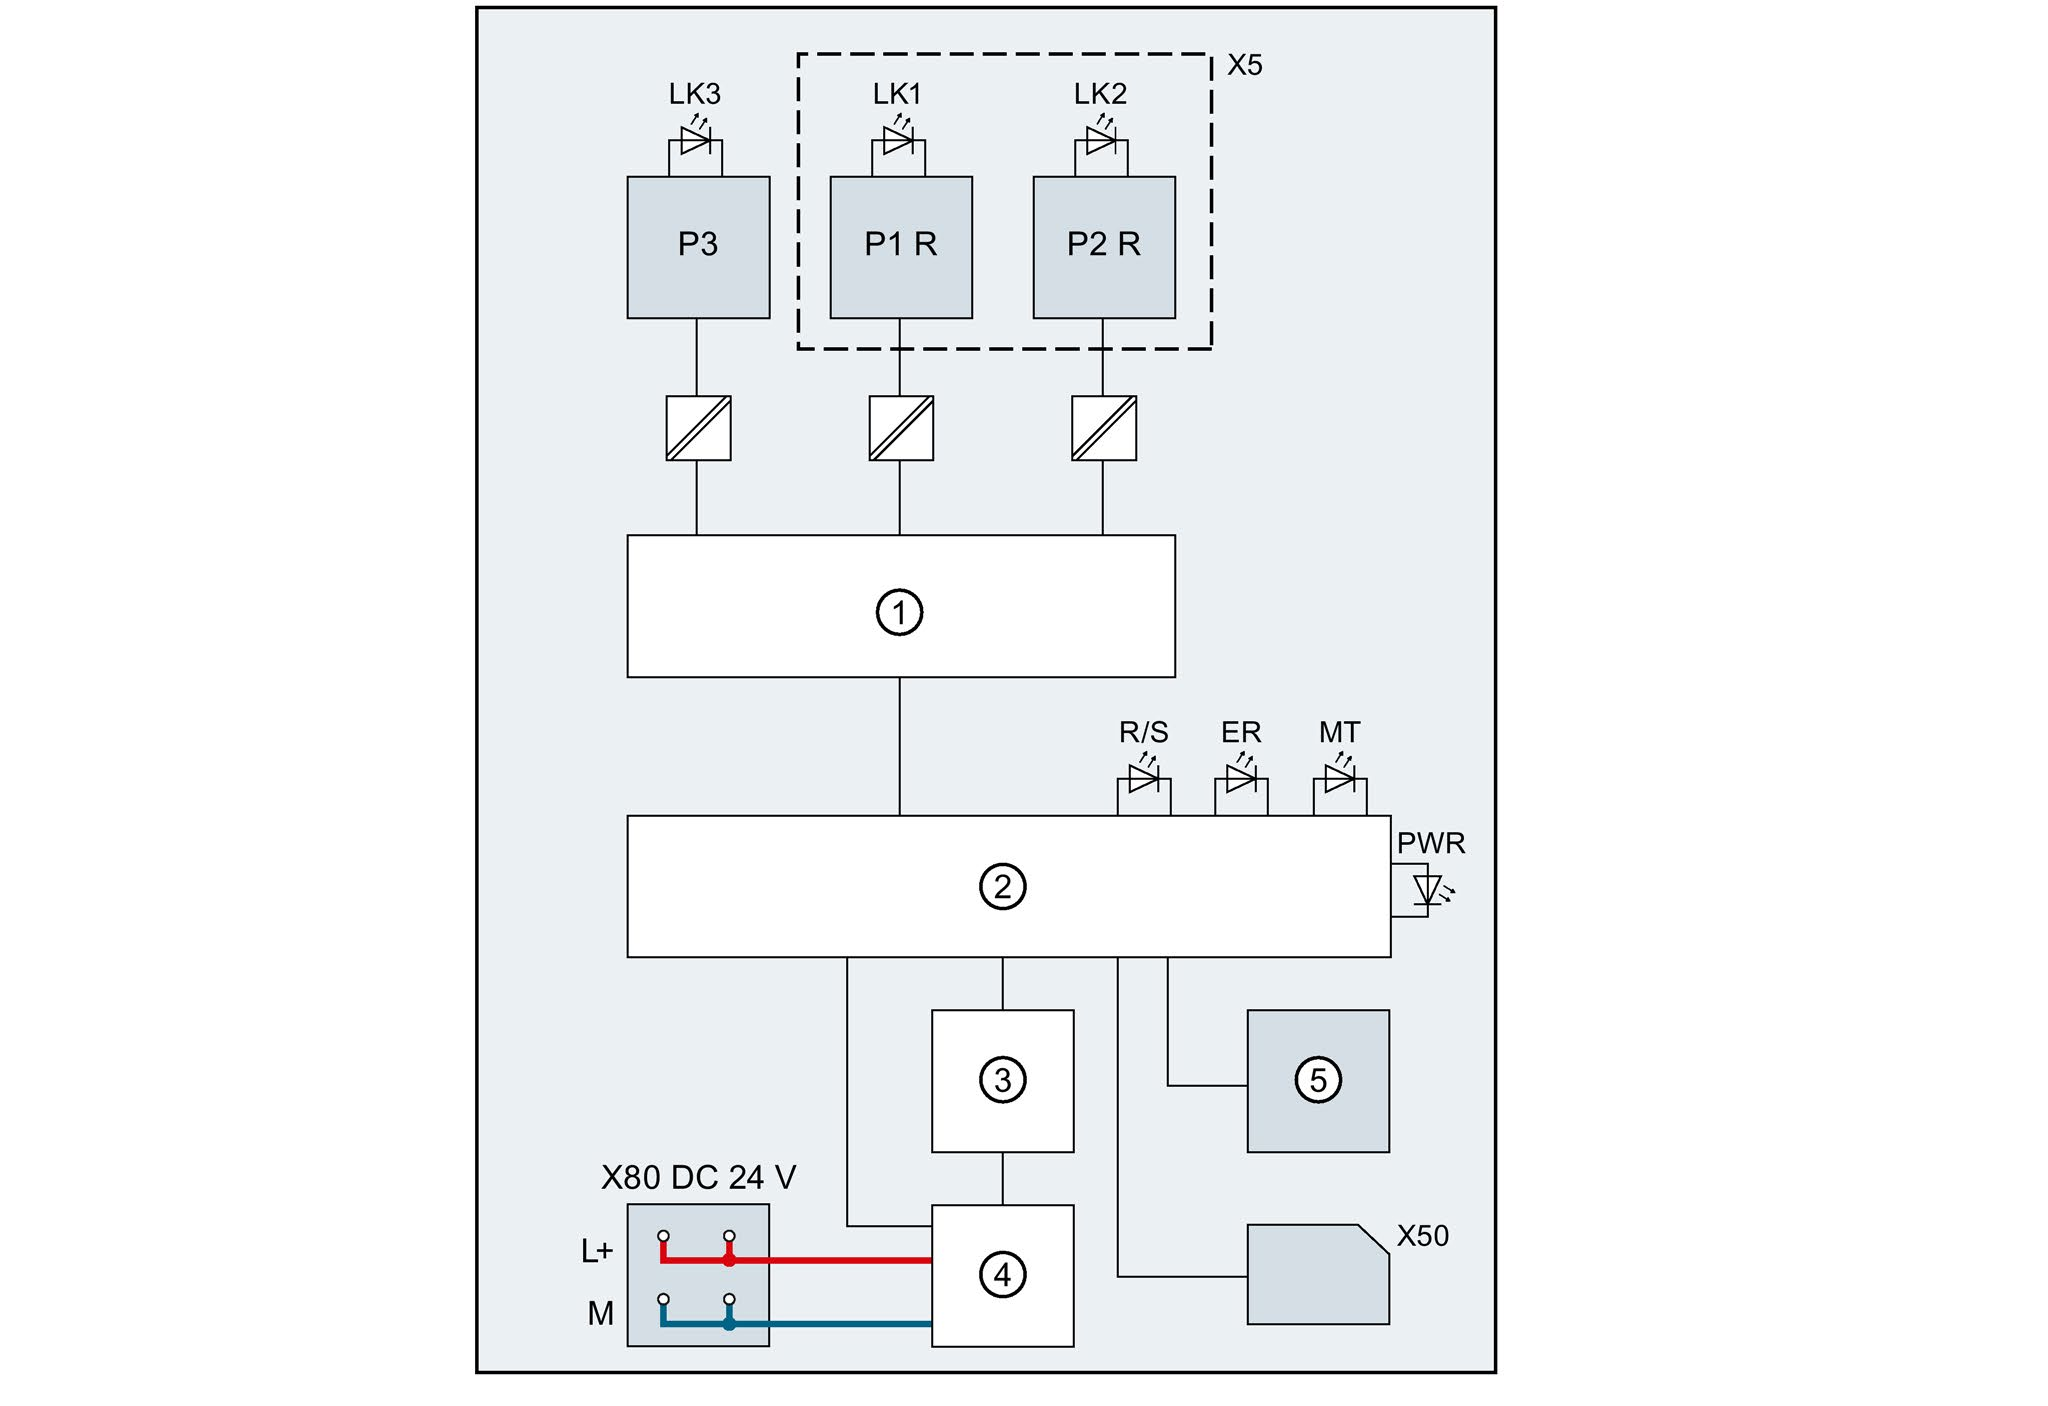 Cpu 1510sp 1 Pn 6es7510 1dj01 0ab0 Simatic Et 200sp Fig 26wiring Diagram For Complete Sending And Receiving Set No Wiring 31 Pin Assignment Block The Following Figure Shows Of